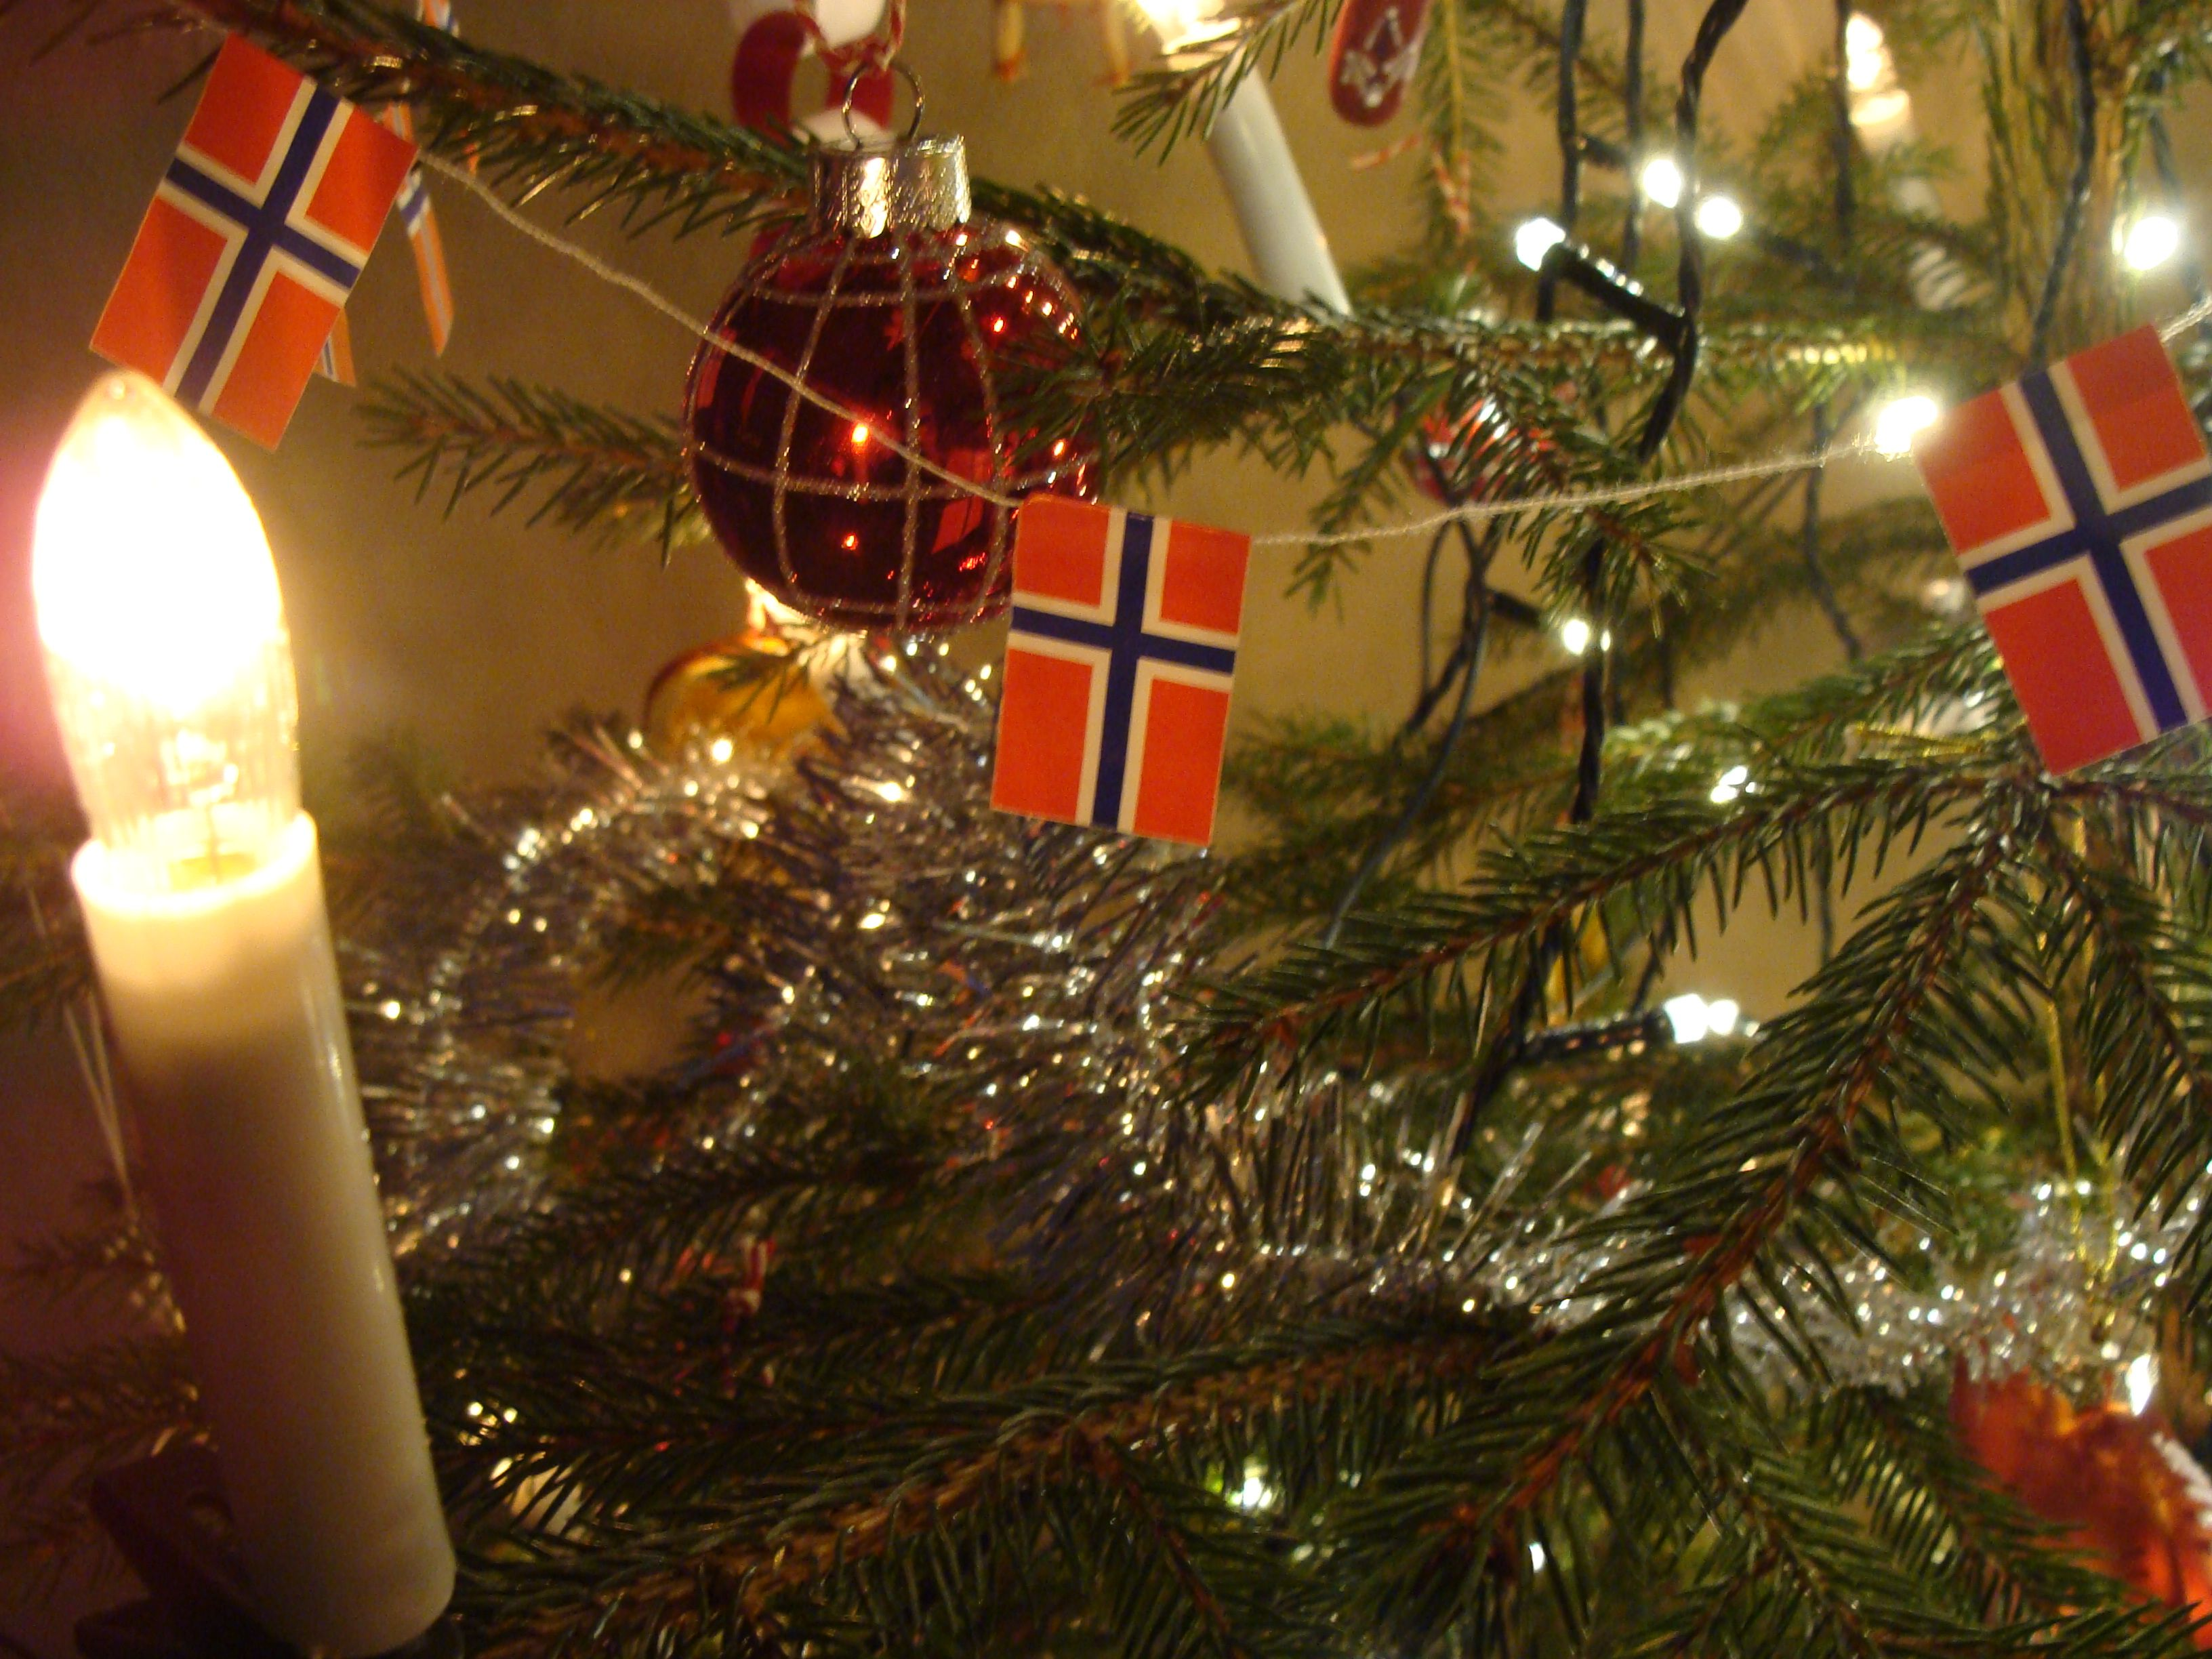 Norwegian Christmas.A Norwegian Christmas Tree Norsk Folk Art And Customs